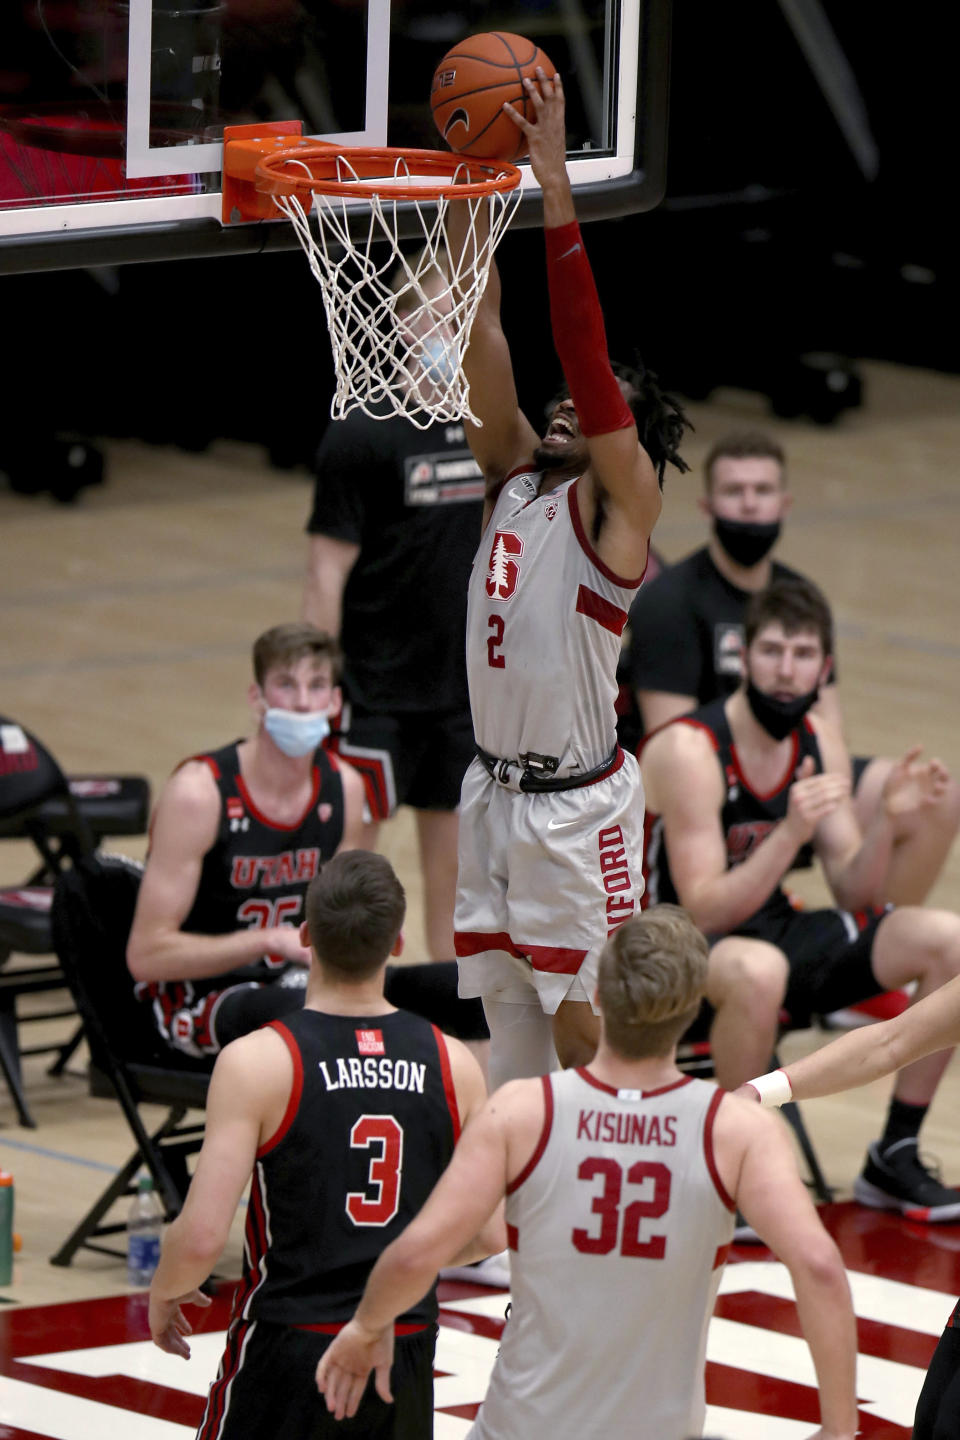 Stanford guard Bryce Wills (2) dunks in front of Utah guard Pelle Larsson (3) during the first half of an NCAA college basketball game Saturday, Feb. 13, 2021, in Stanford, Calif. (AP Photo/Scot Tucker)